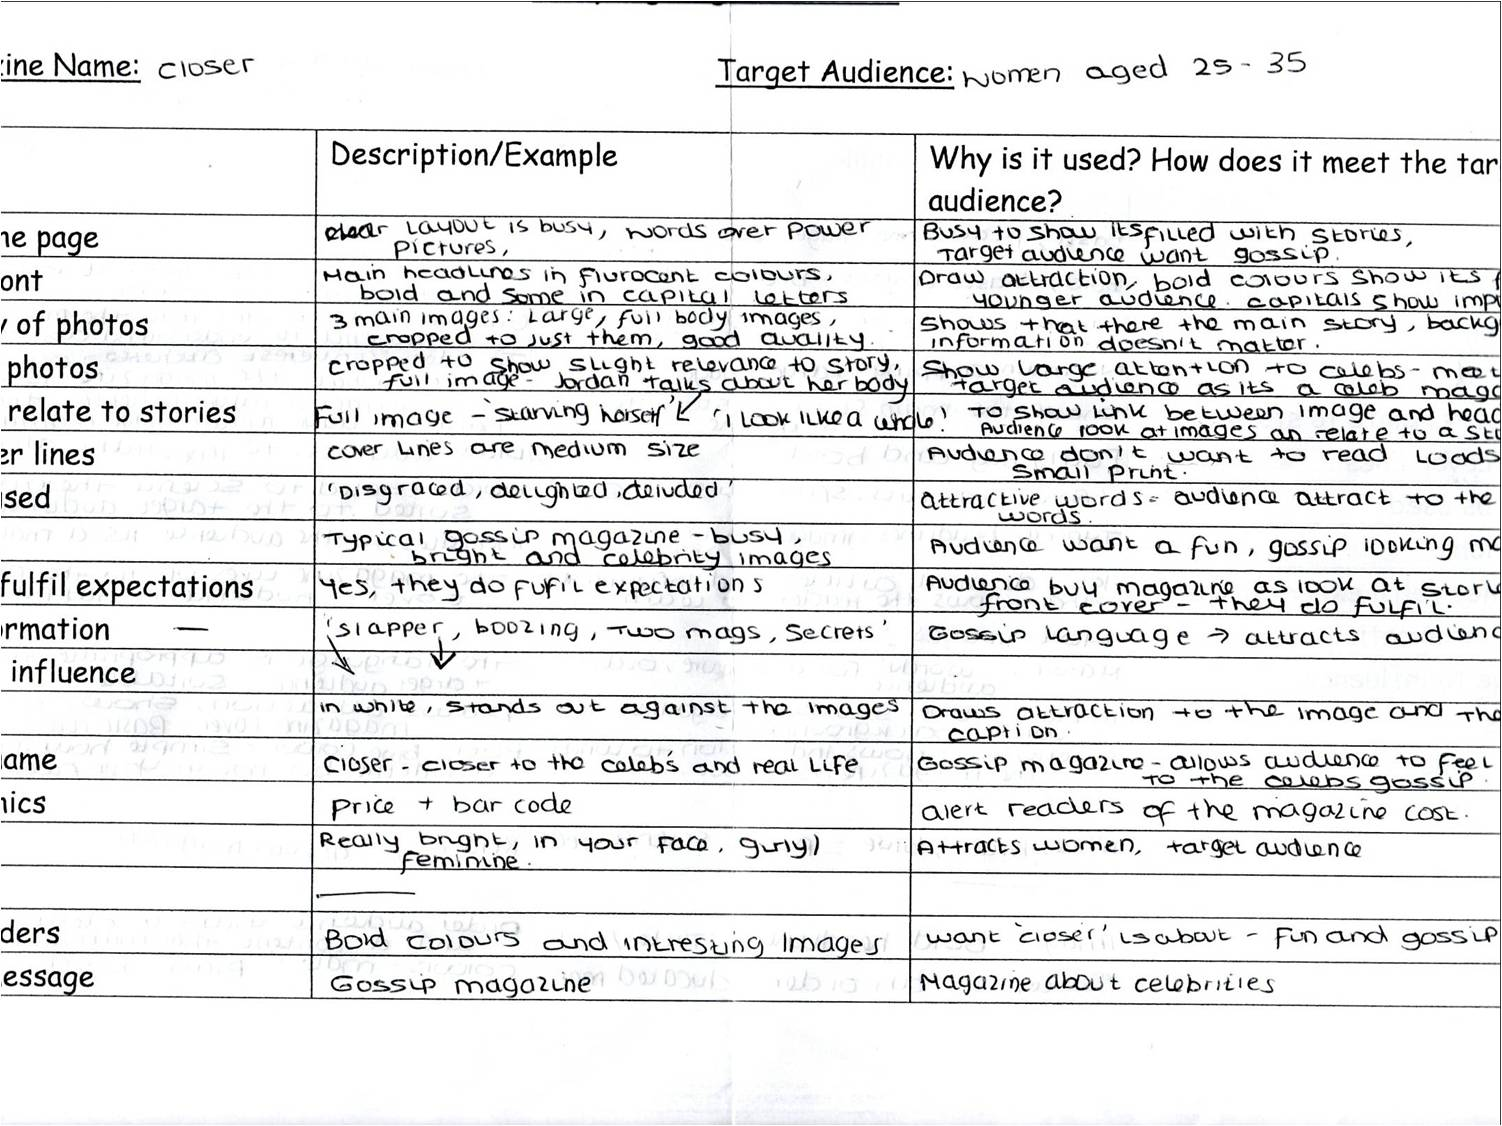 Front cover music magazine analysis essay